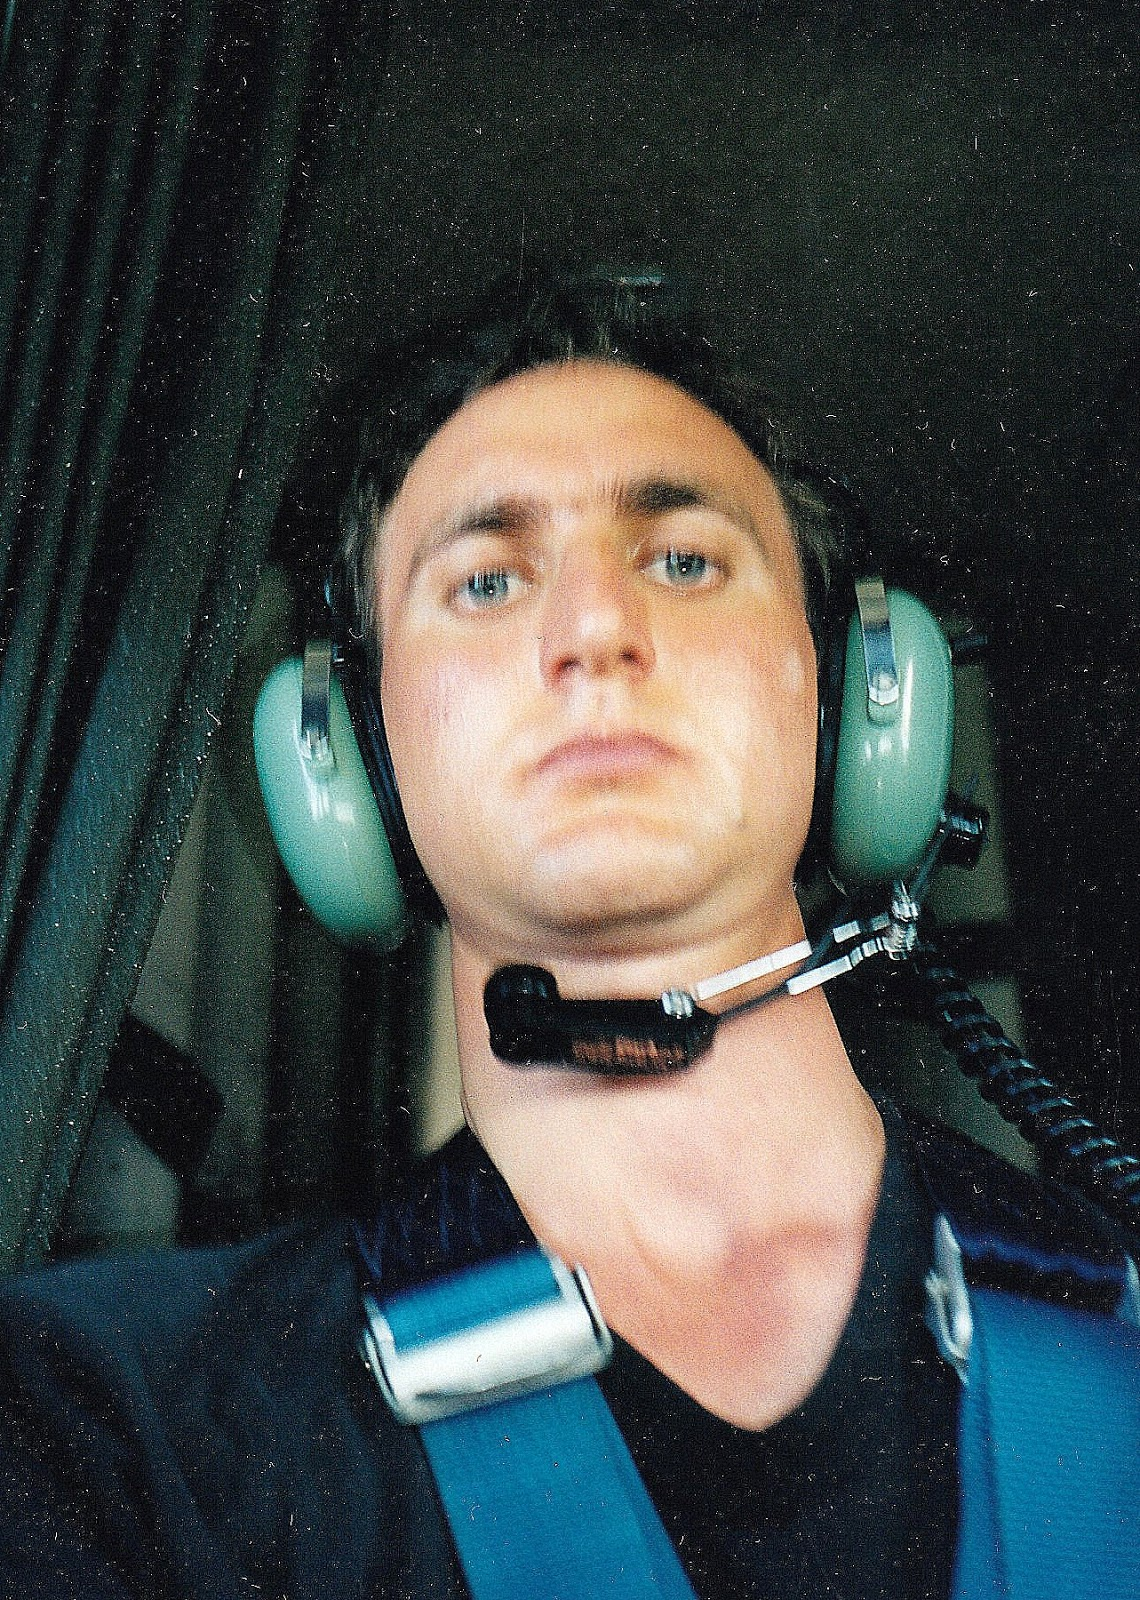 Tonga travel brought me some interesting experiences, including being at the controls of an aircraft